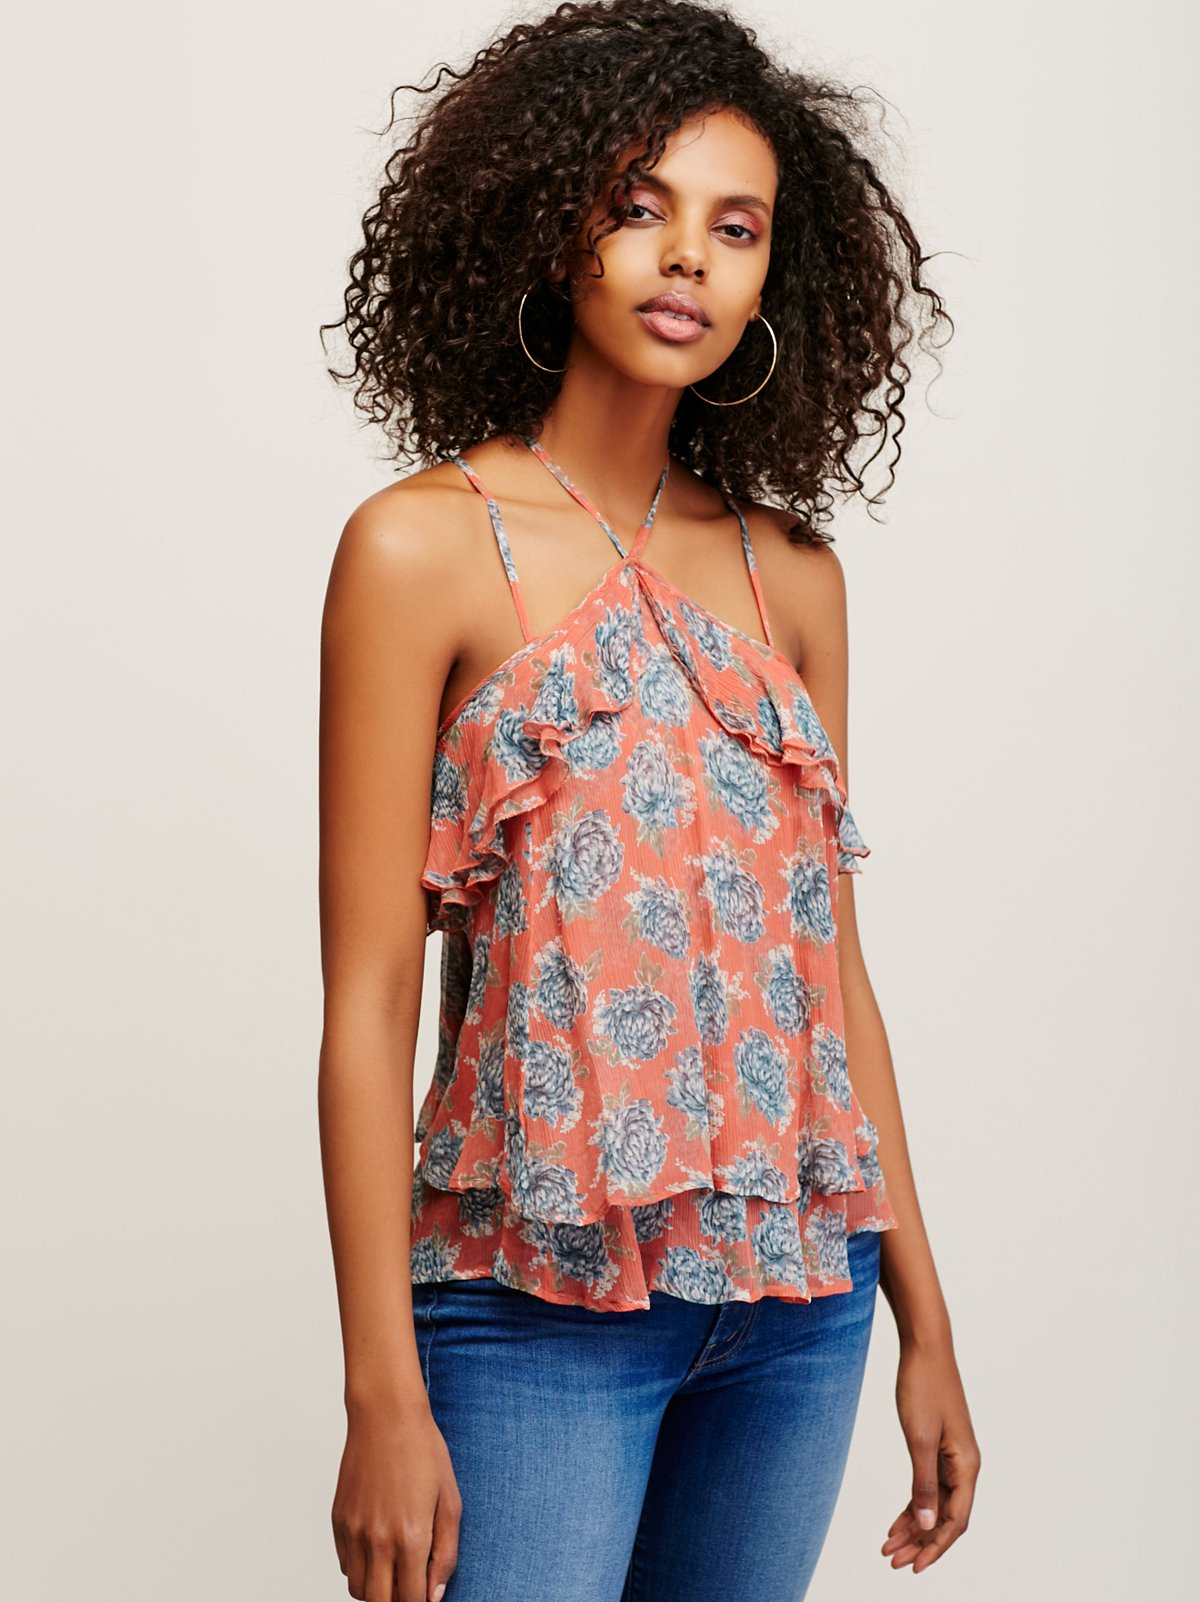 Retro Ruffle Halter Top